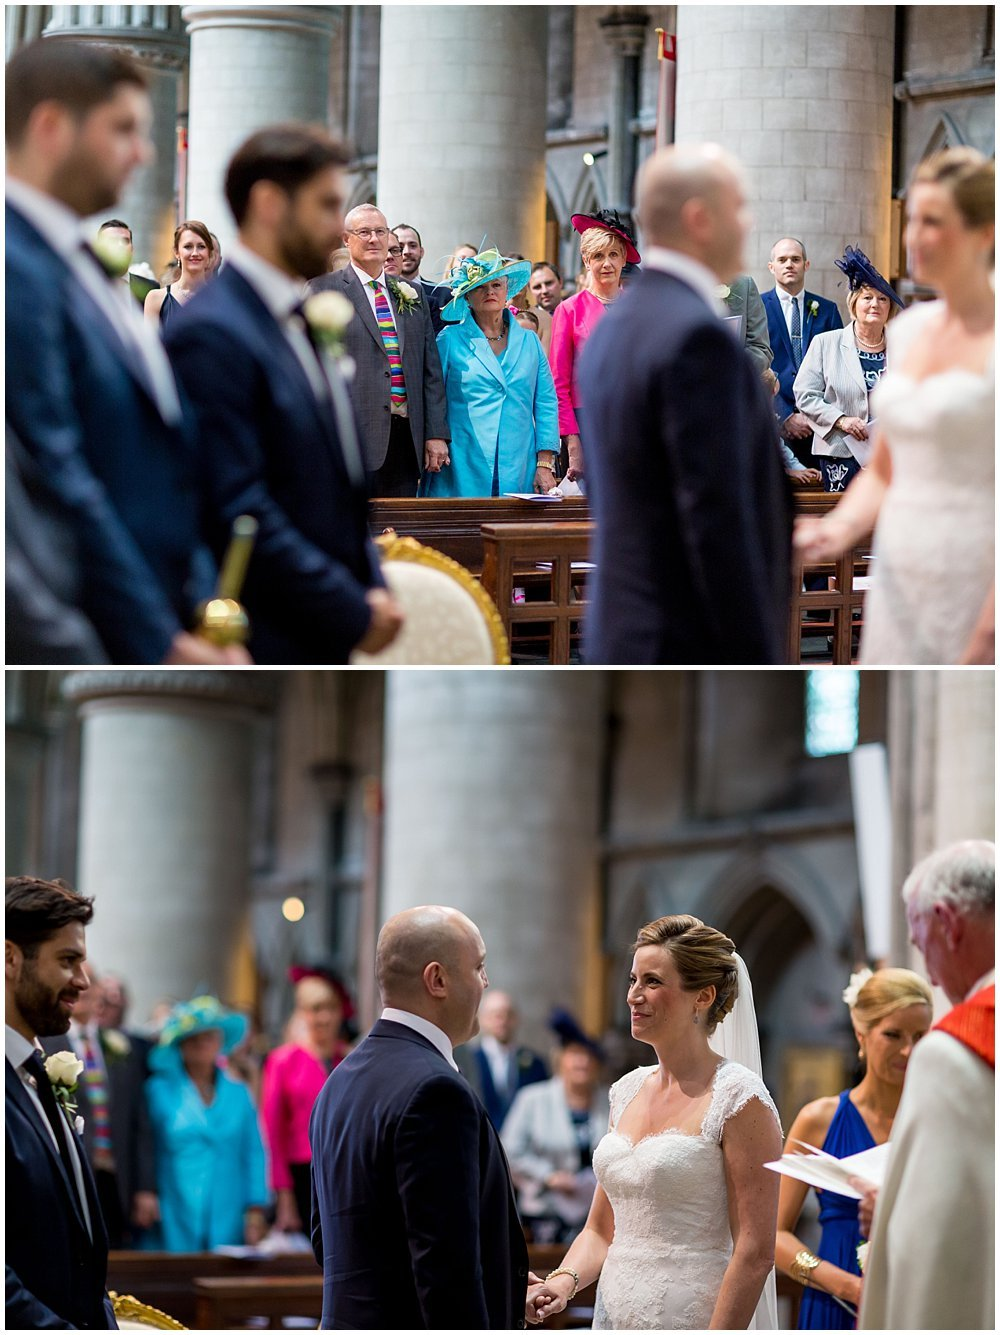 AMY AND DUNCAN NORWICH CATHEDRAL AND THE BOATHOUSE WEDDING - NORWICH AND NORFOLK WEDDING PHOTOGRAPHER 13